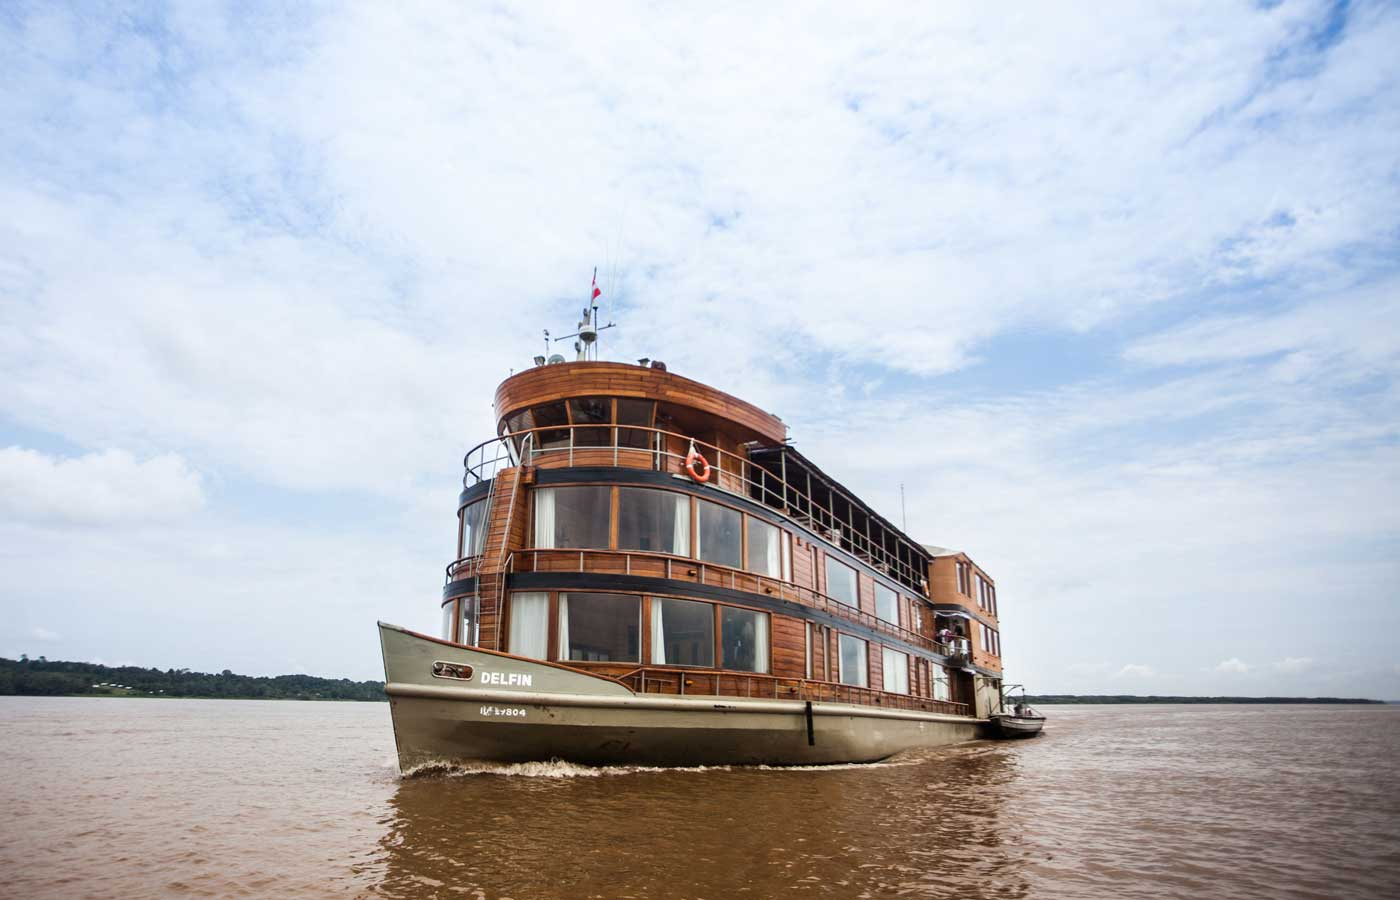 Delfin Amazon cruise